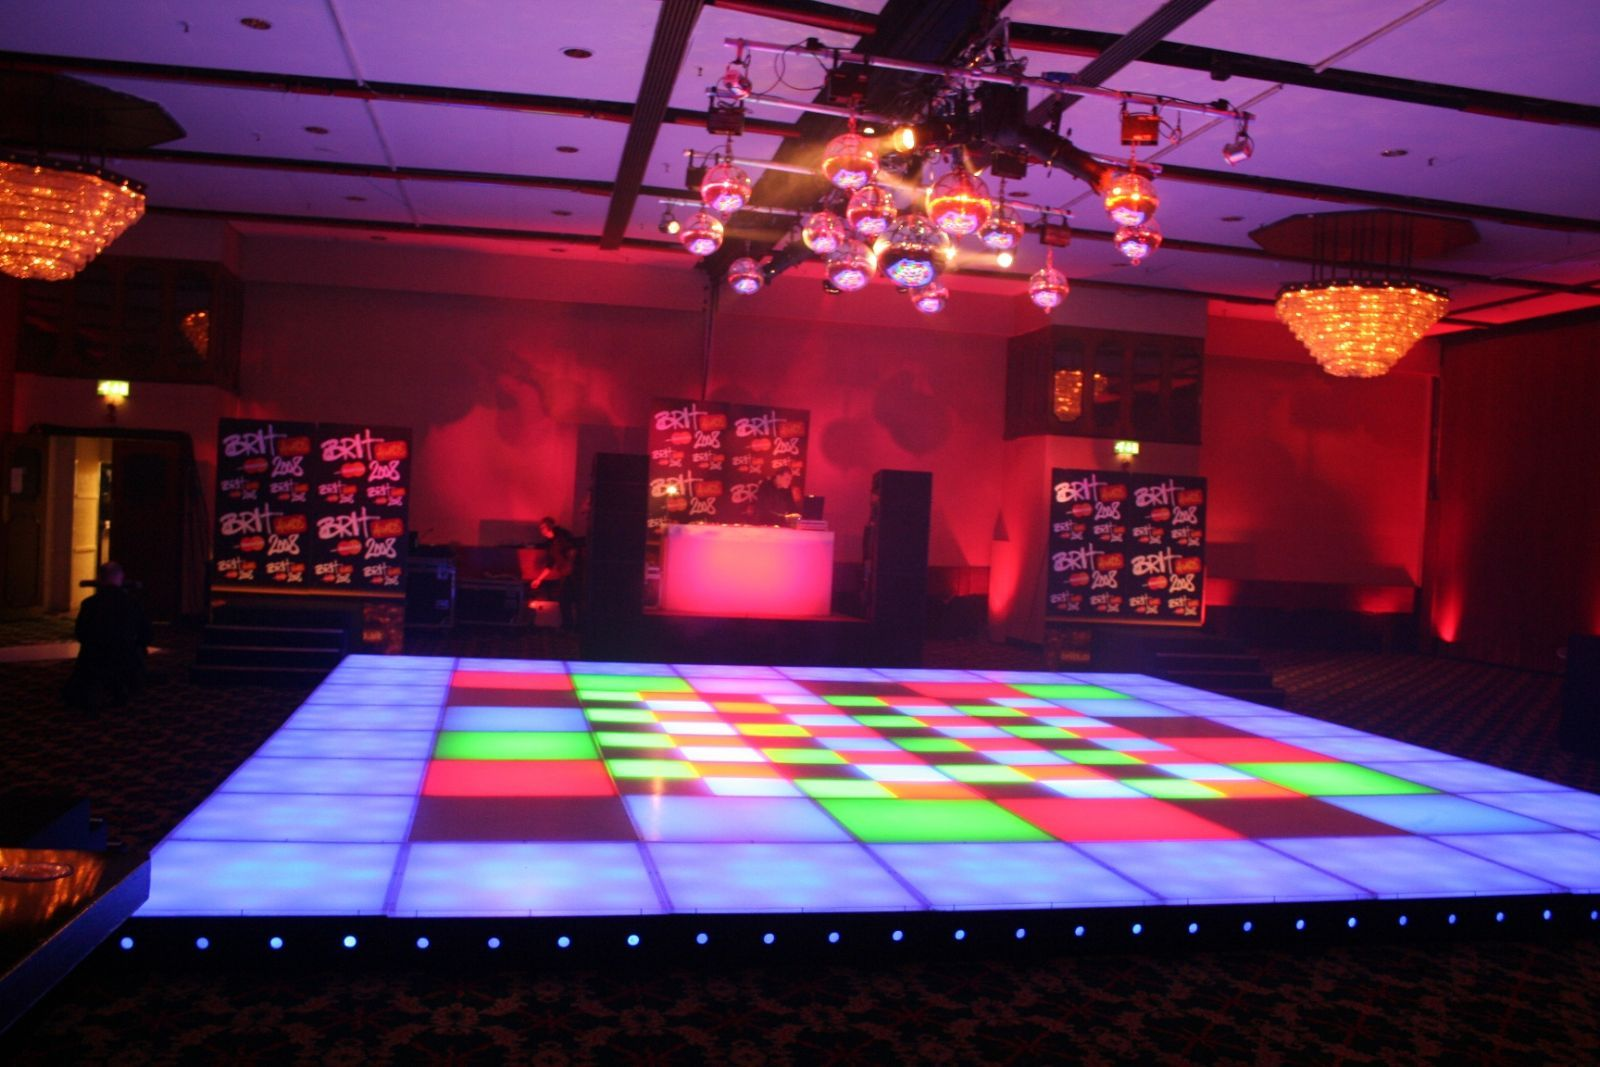 Our Dance Floor Wooden Temporary Modular Portable Floors And Flooring Are The Most Por In Sydney Melbourne